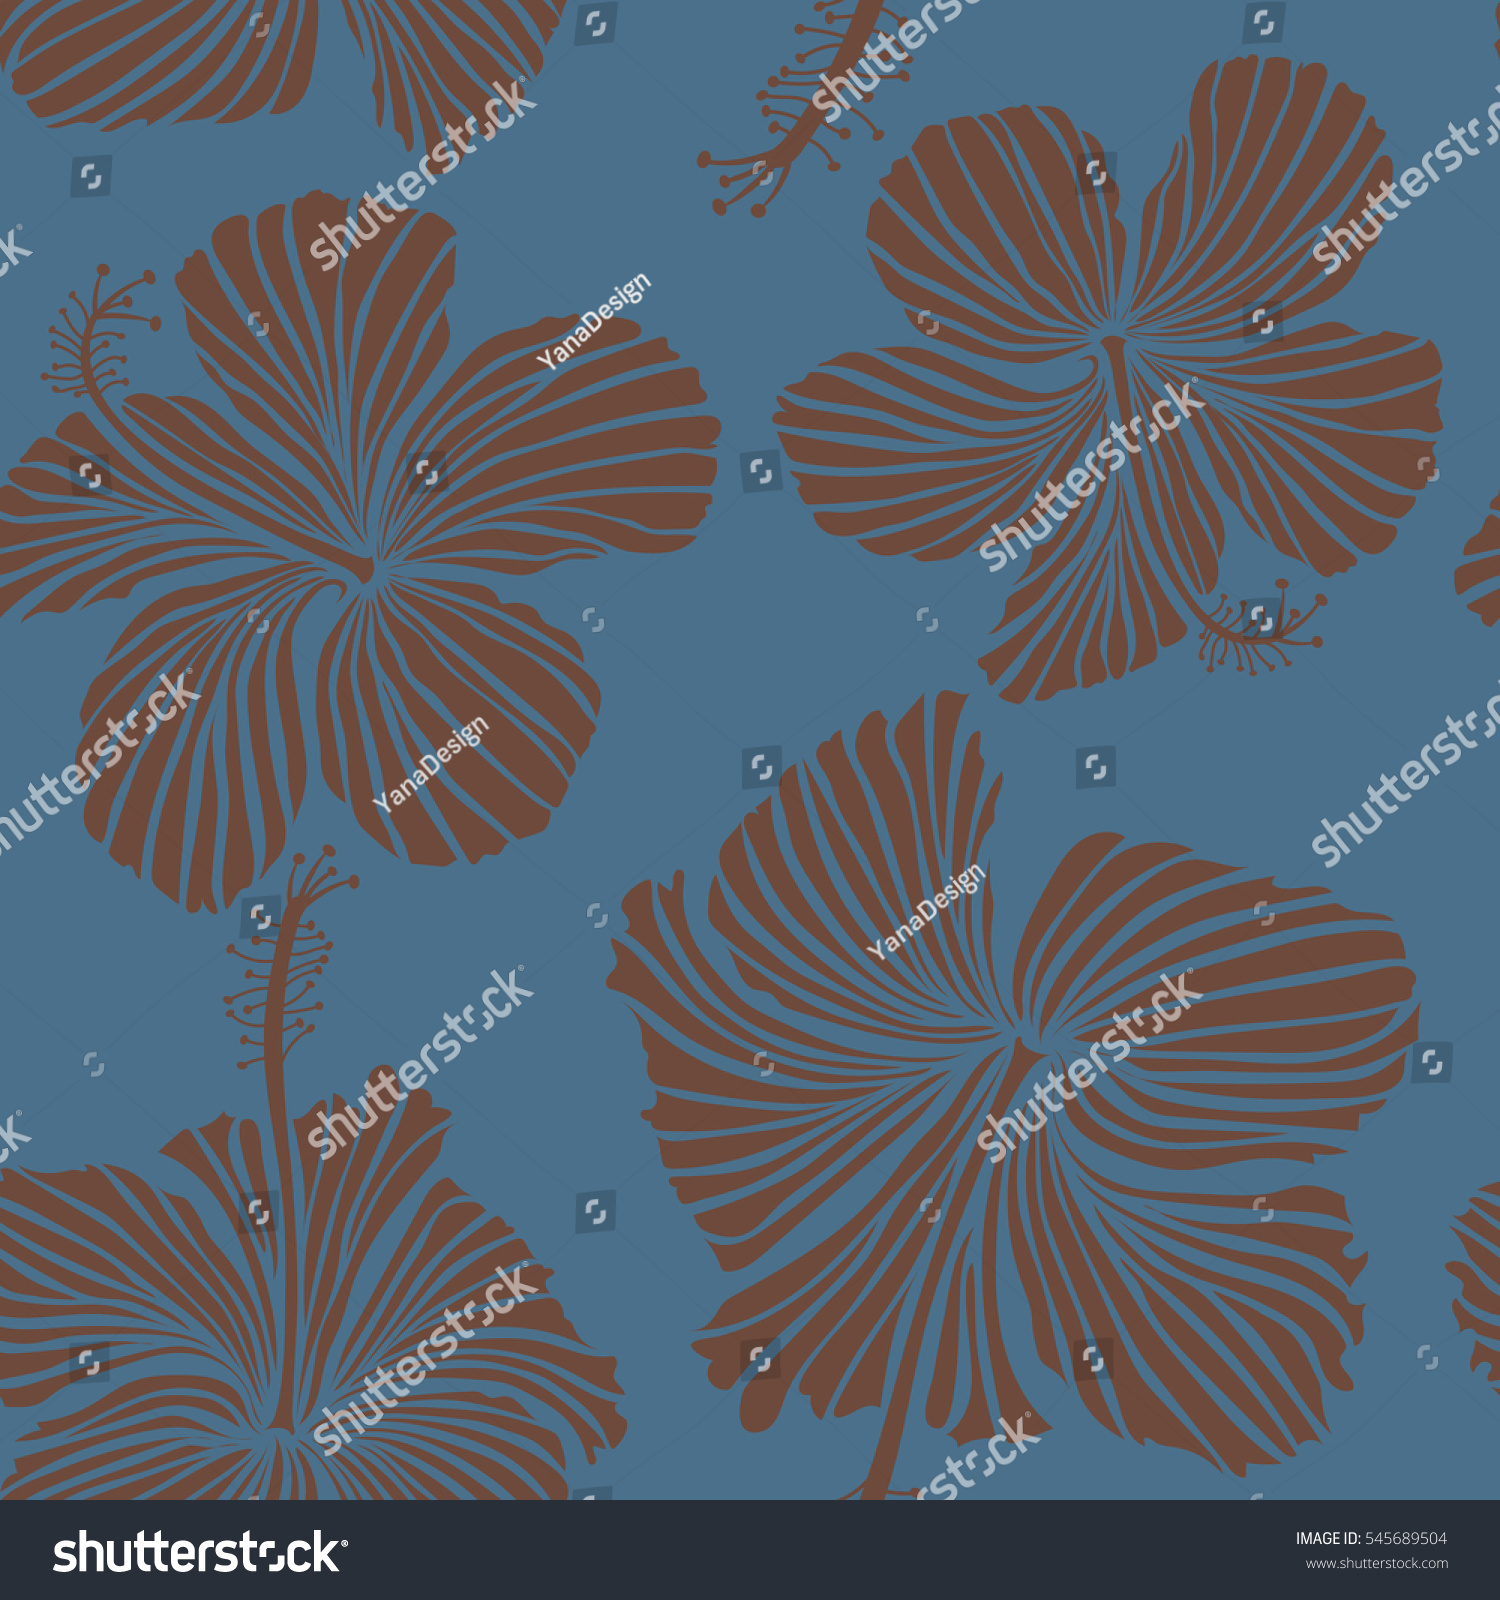 Background Texture Wallpaper Floral Theme Abstract Ethnic Vector Seamless Pattern Tribal Art